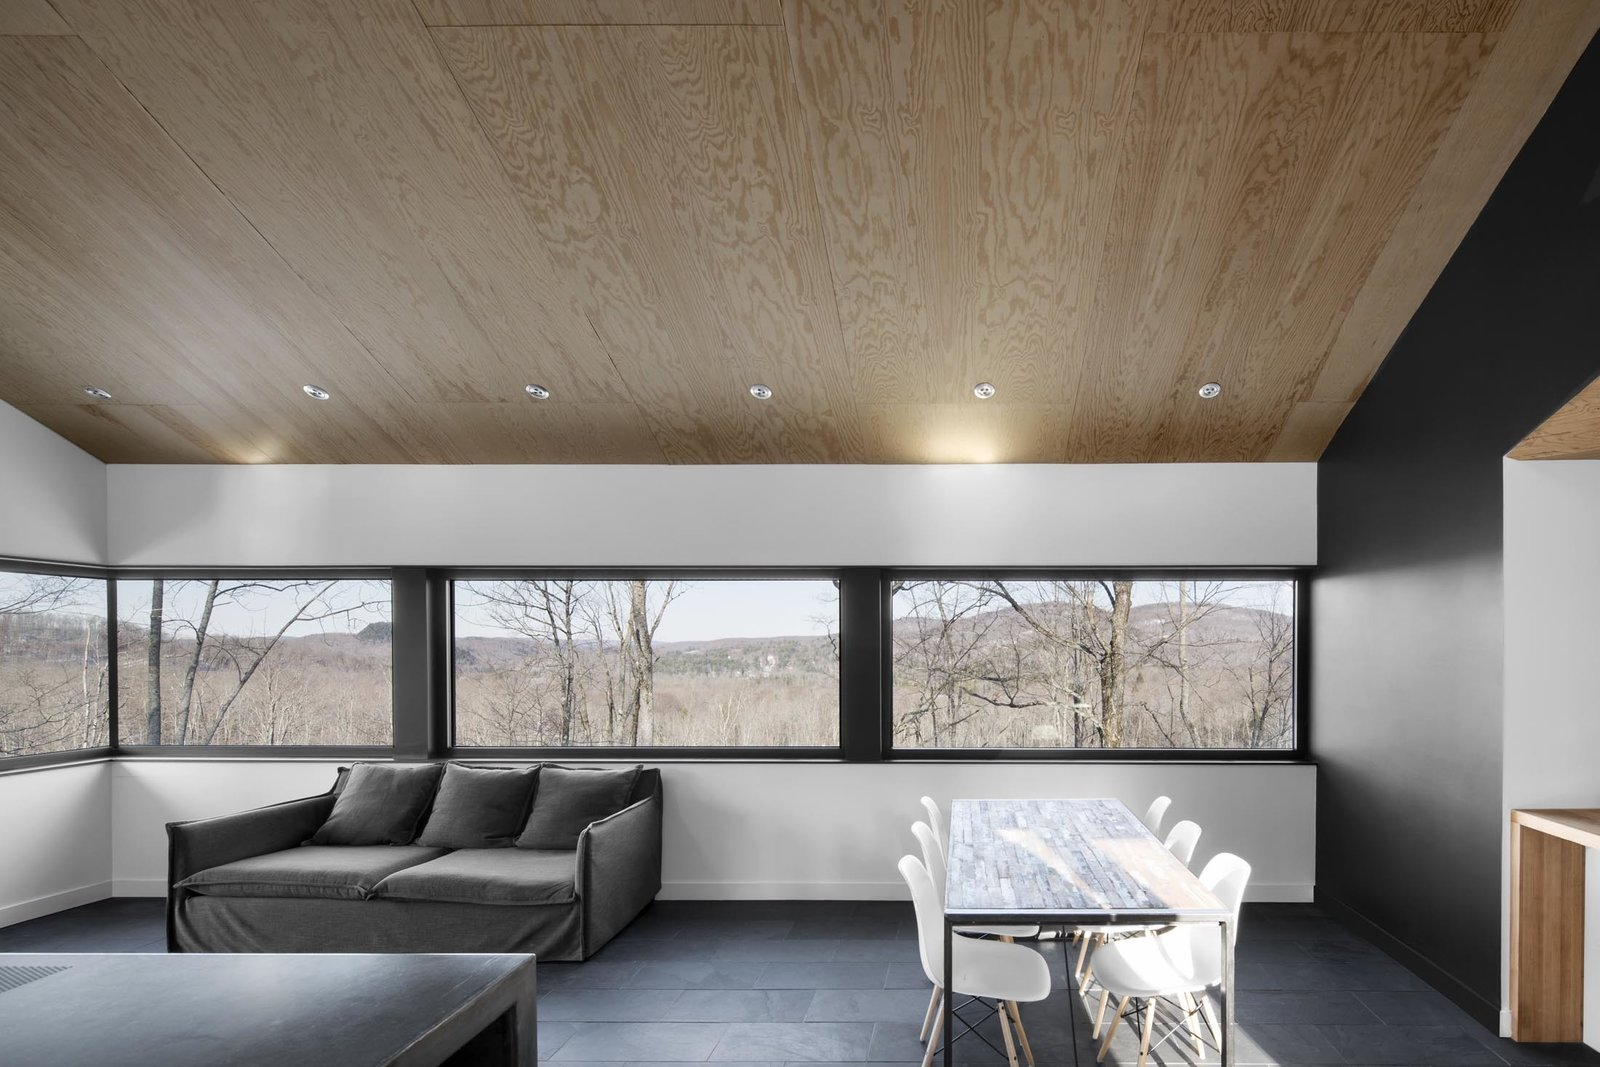 """The horizontal strip window in the combined living and dining room frames the wooded mountain range and valley, transforming the home's interior with the changing seasons. It also saved money during the construction process, as the minimal glazing cost a lot less than floor-to-ceiling windows. """"It lets you enjoy the spectacular views without breaking the bank,"""" Dworkind says. Amazing Cantilevered Home in the Mountains - Photo 3 of 11"""